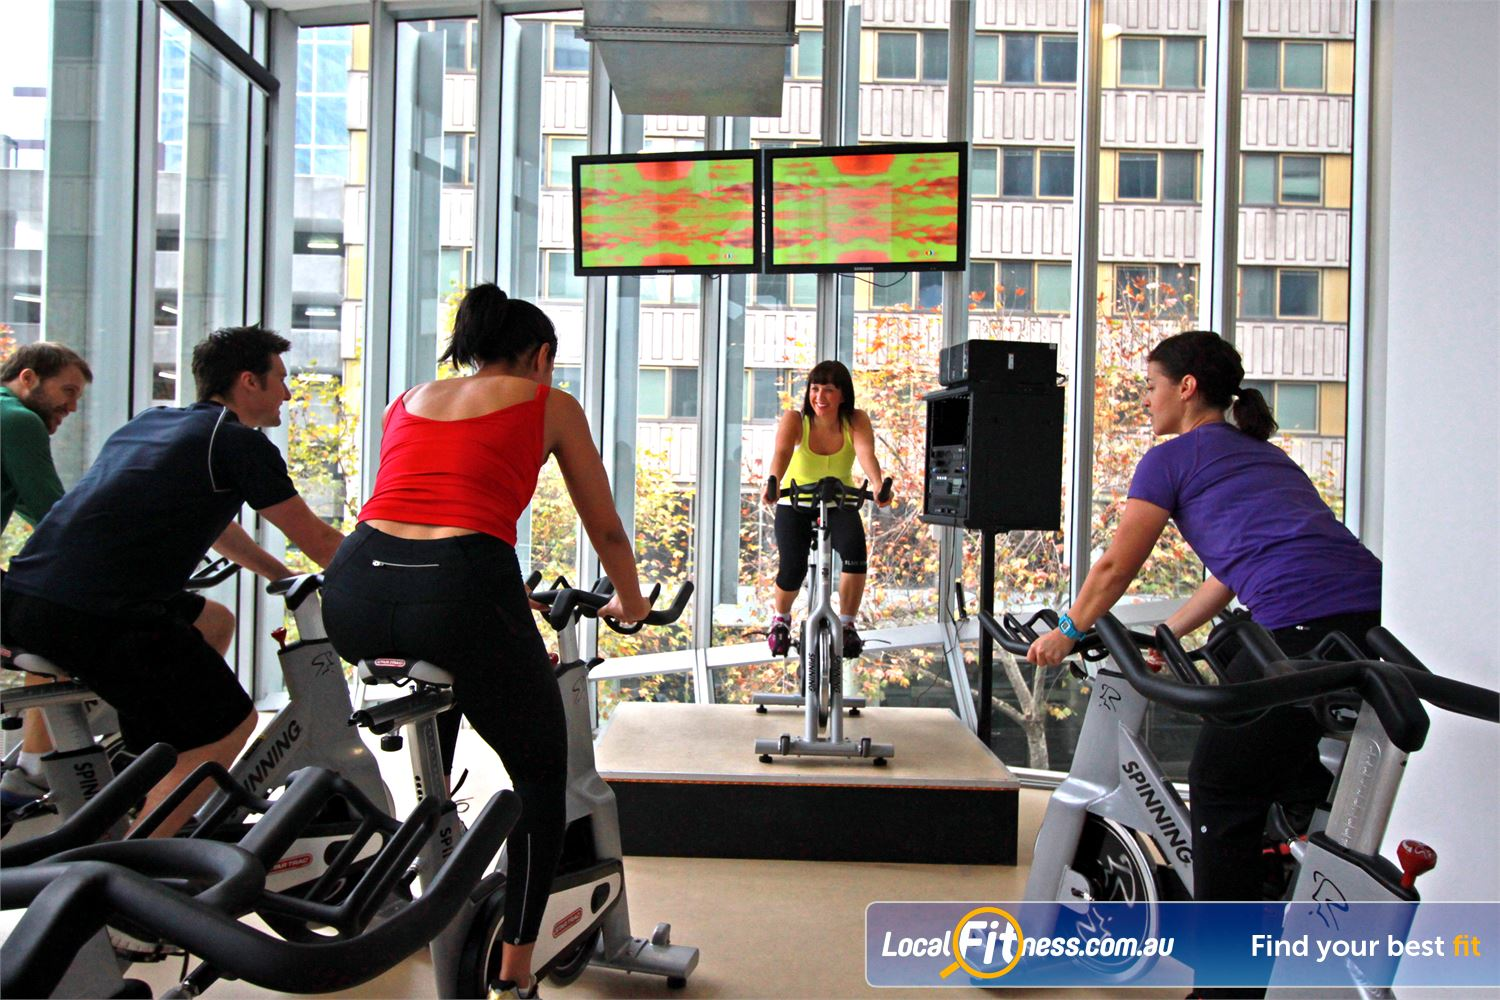 South Pacific Health Clubs Melbourne Enjoy scenic views while you burn calories in our Melbourne spin cycle classes.